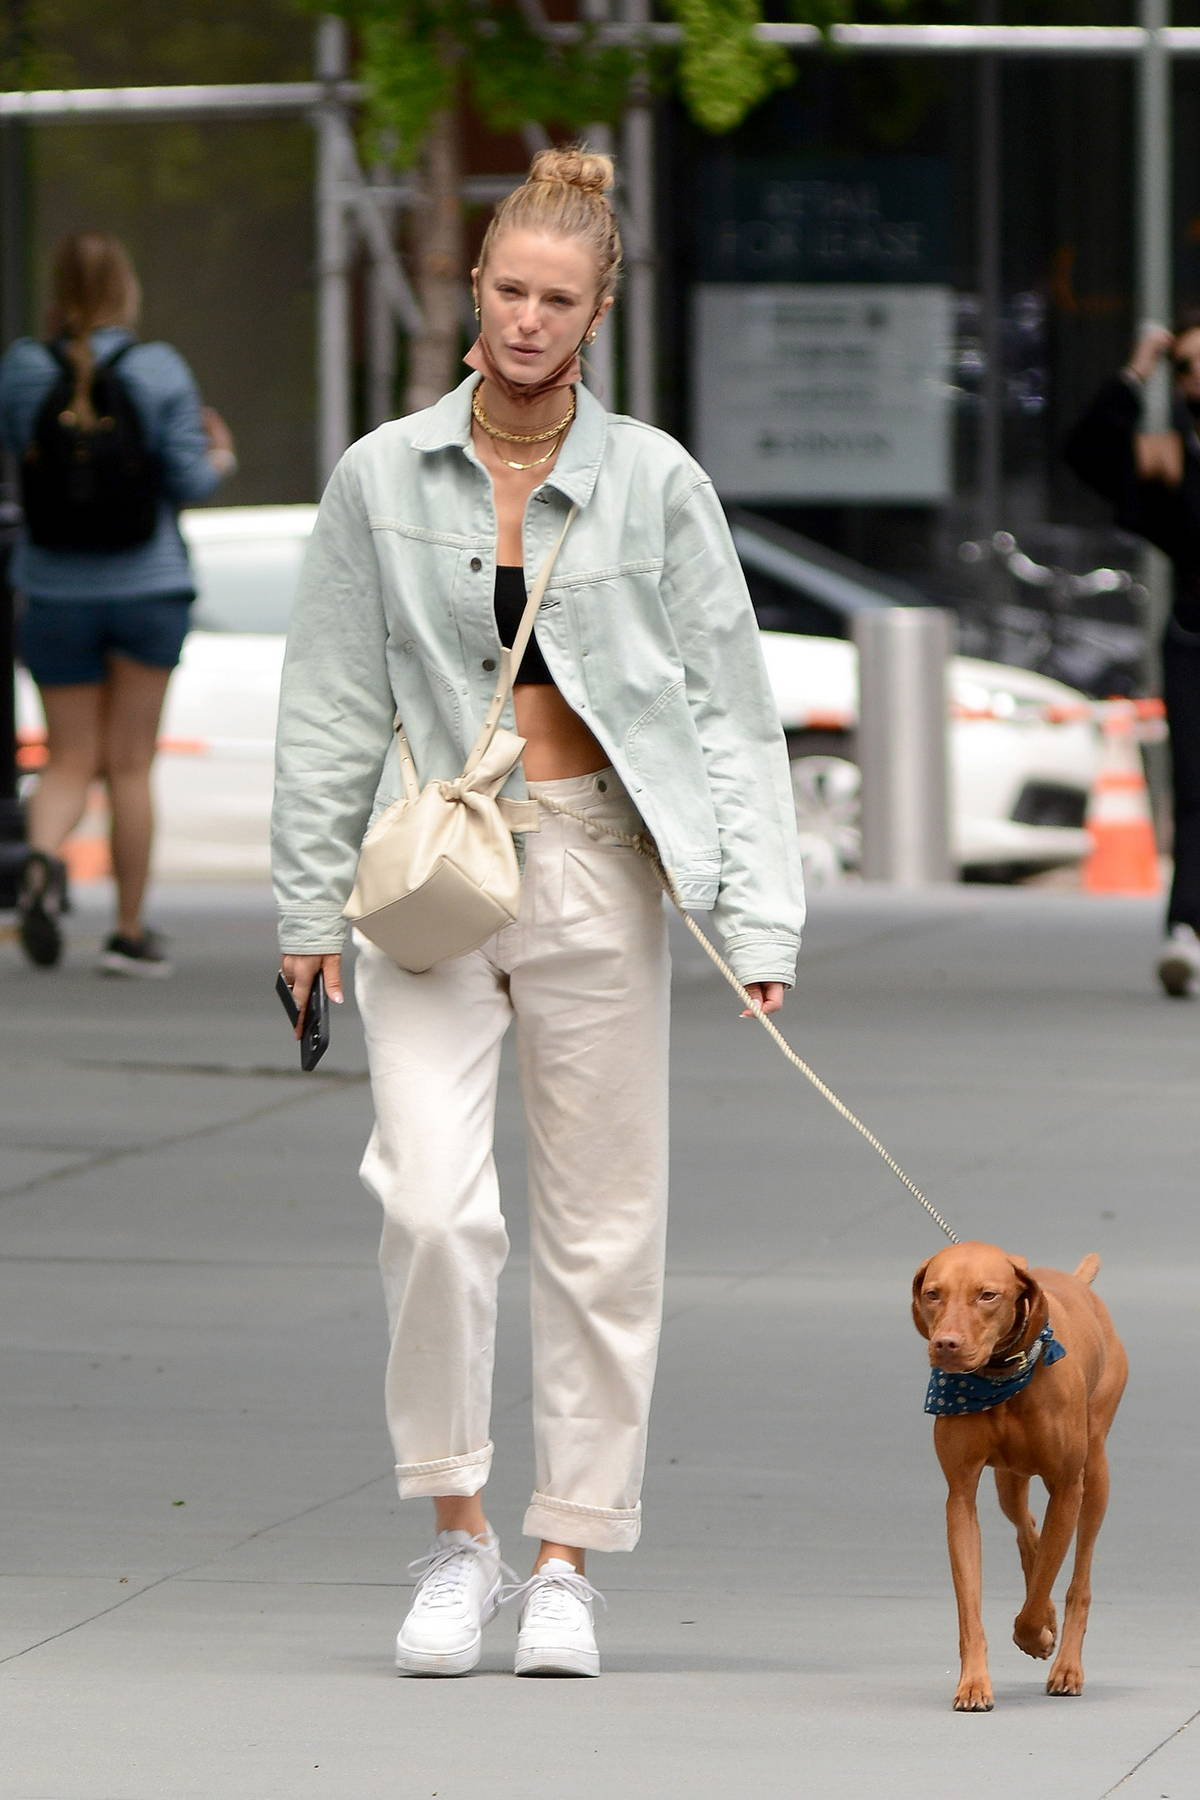 Kate Bock keeps it casual as she steps out for stroll with her dog in New York City